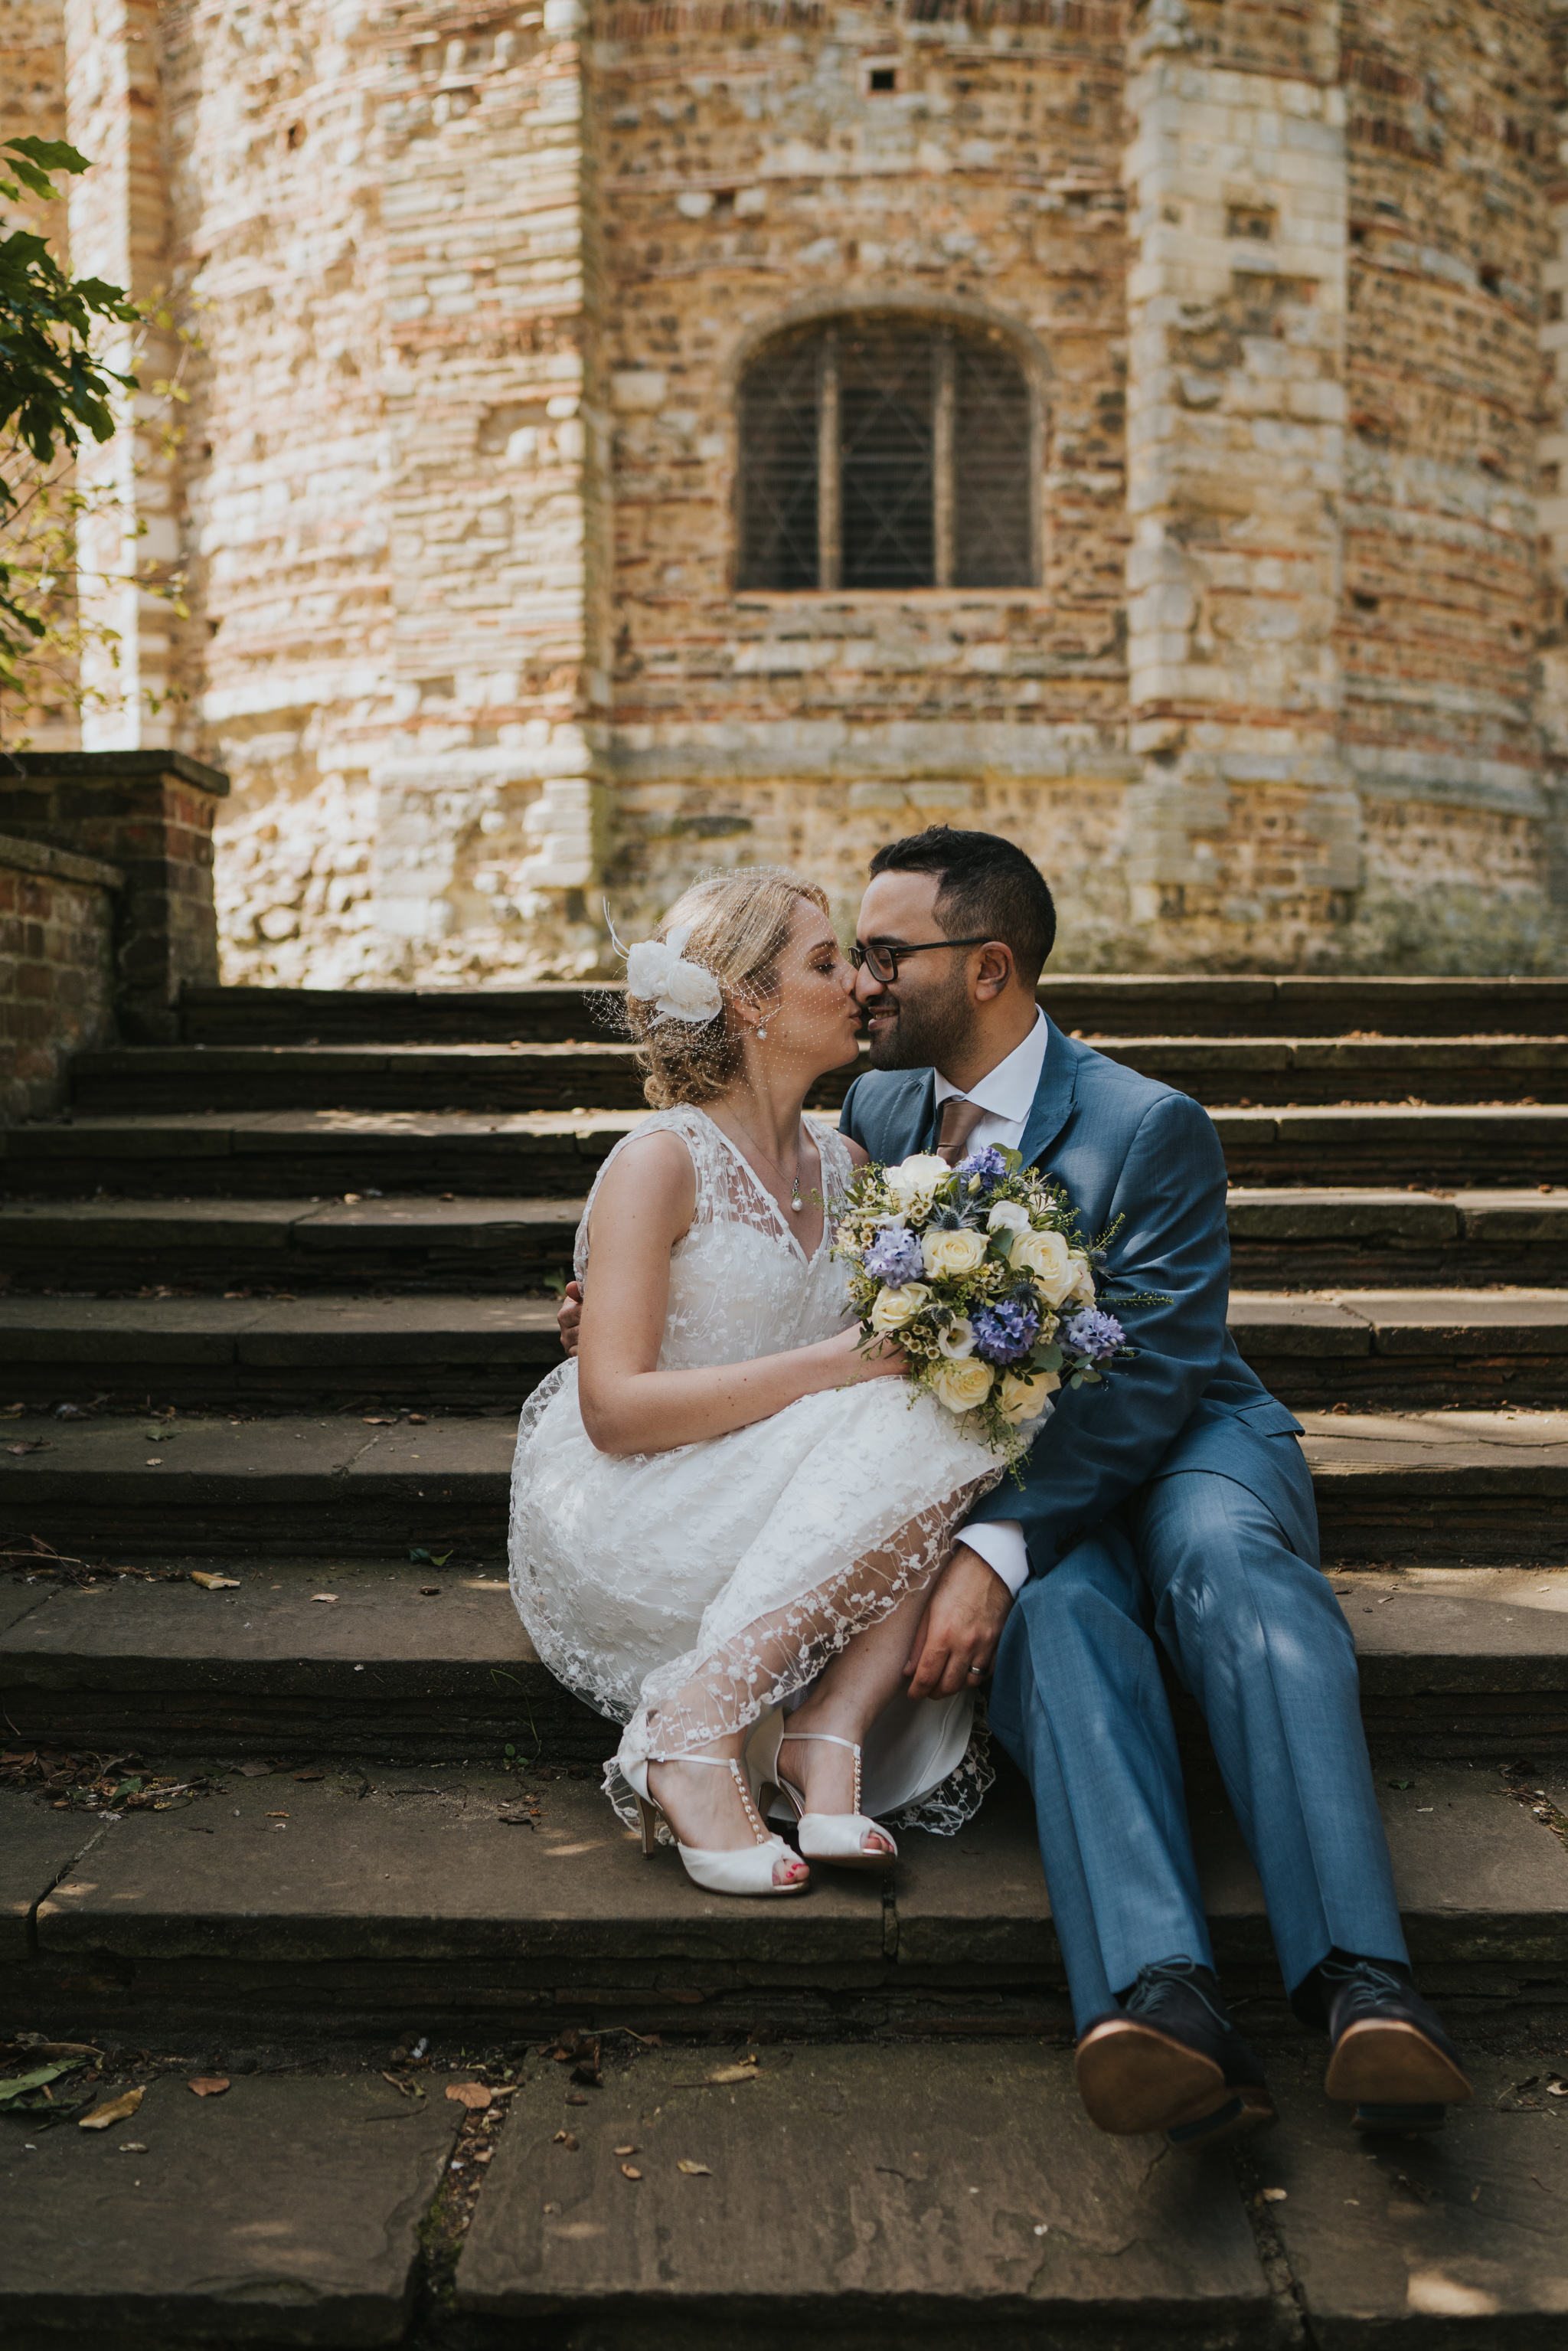 rhian-ali-colchester-essex-town-elopement-alternative-wedding-photographer-grace-elizabeth-essex-suffolk-norfolk-devon (69 of 81).jpg